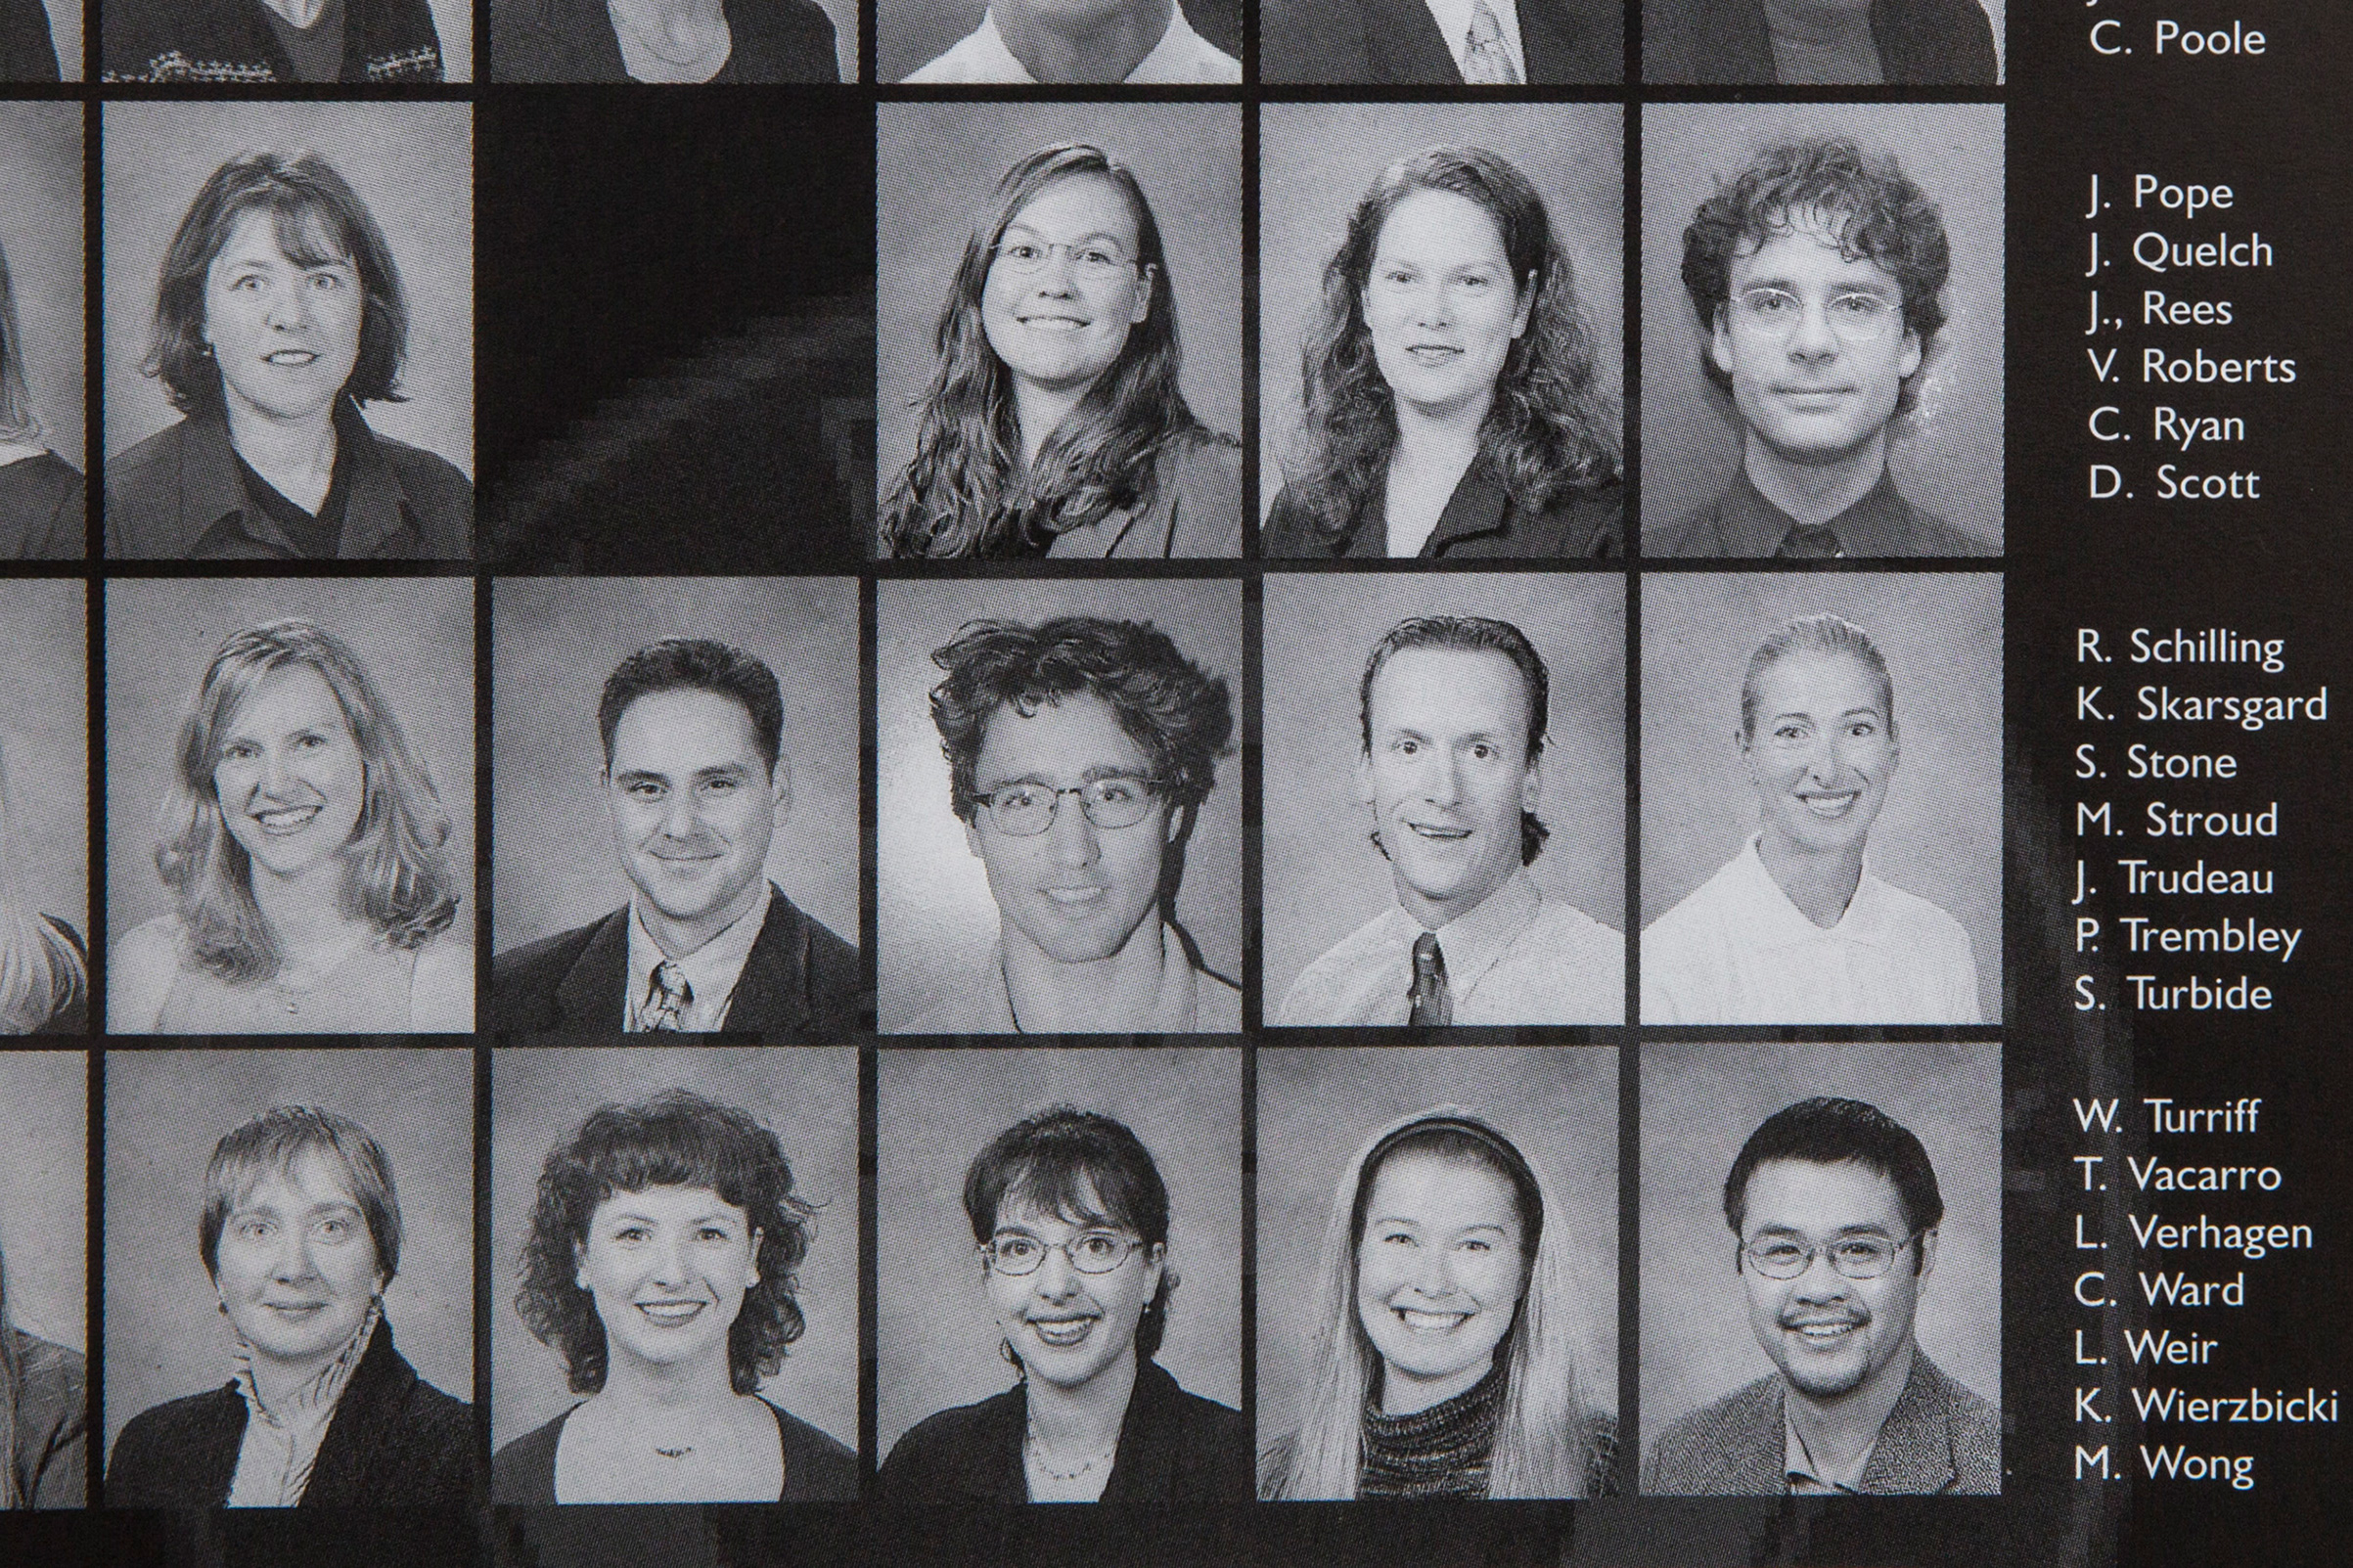 The yearbook shows Trudeau among the staff at West Point Grey, a private day school. He downplayed his experience there during his campaign in 2015.